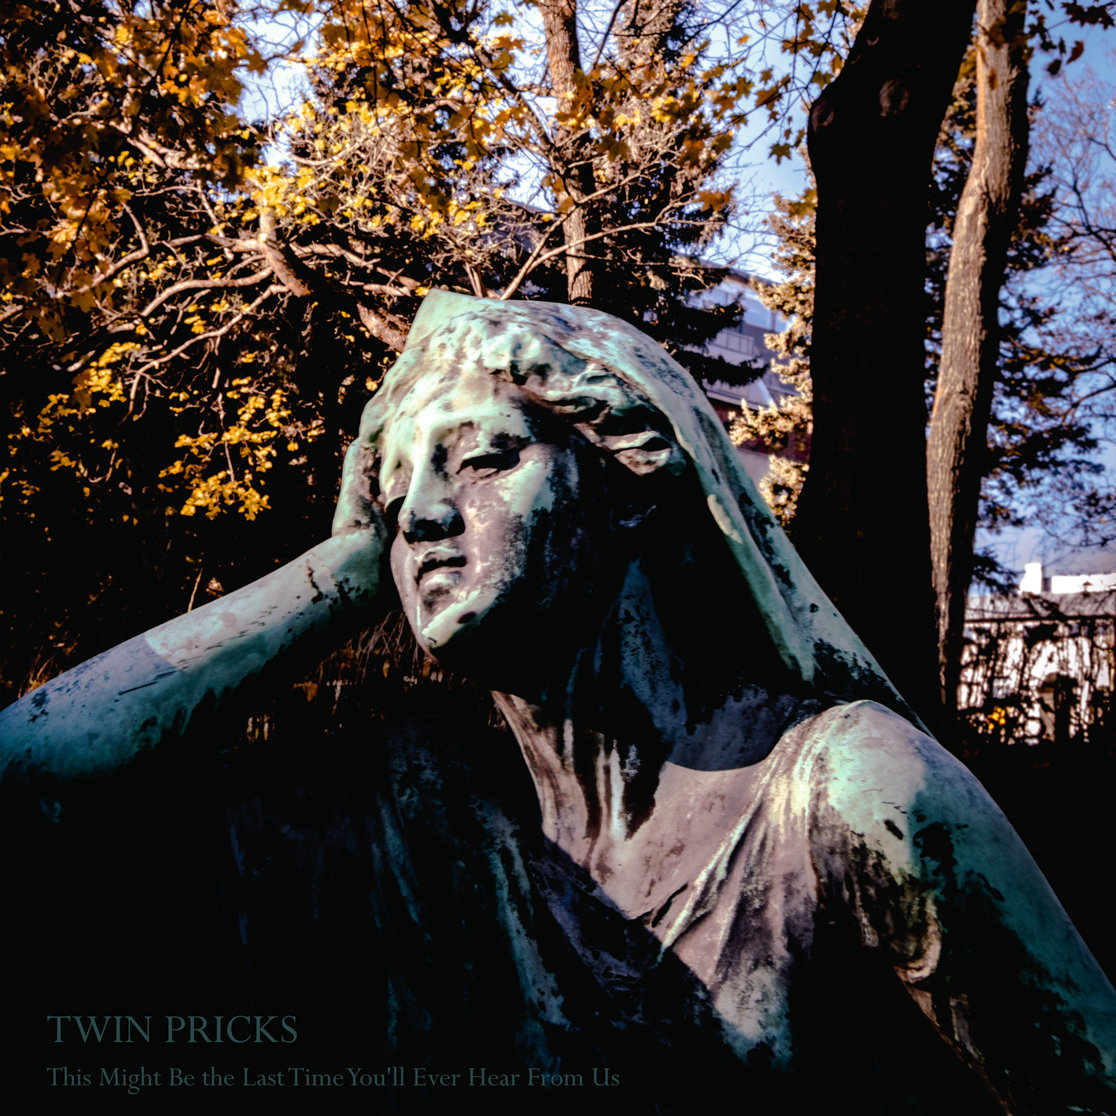 Twin Pricks - This Might Be The Last Time You'll Ever Hear From Us